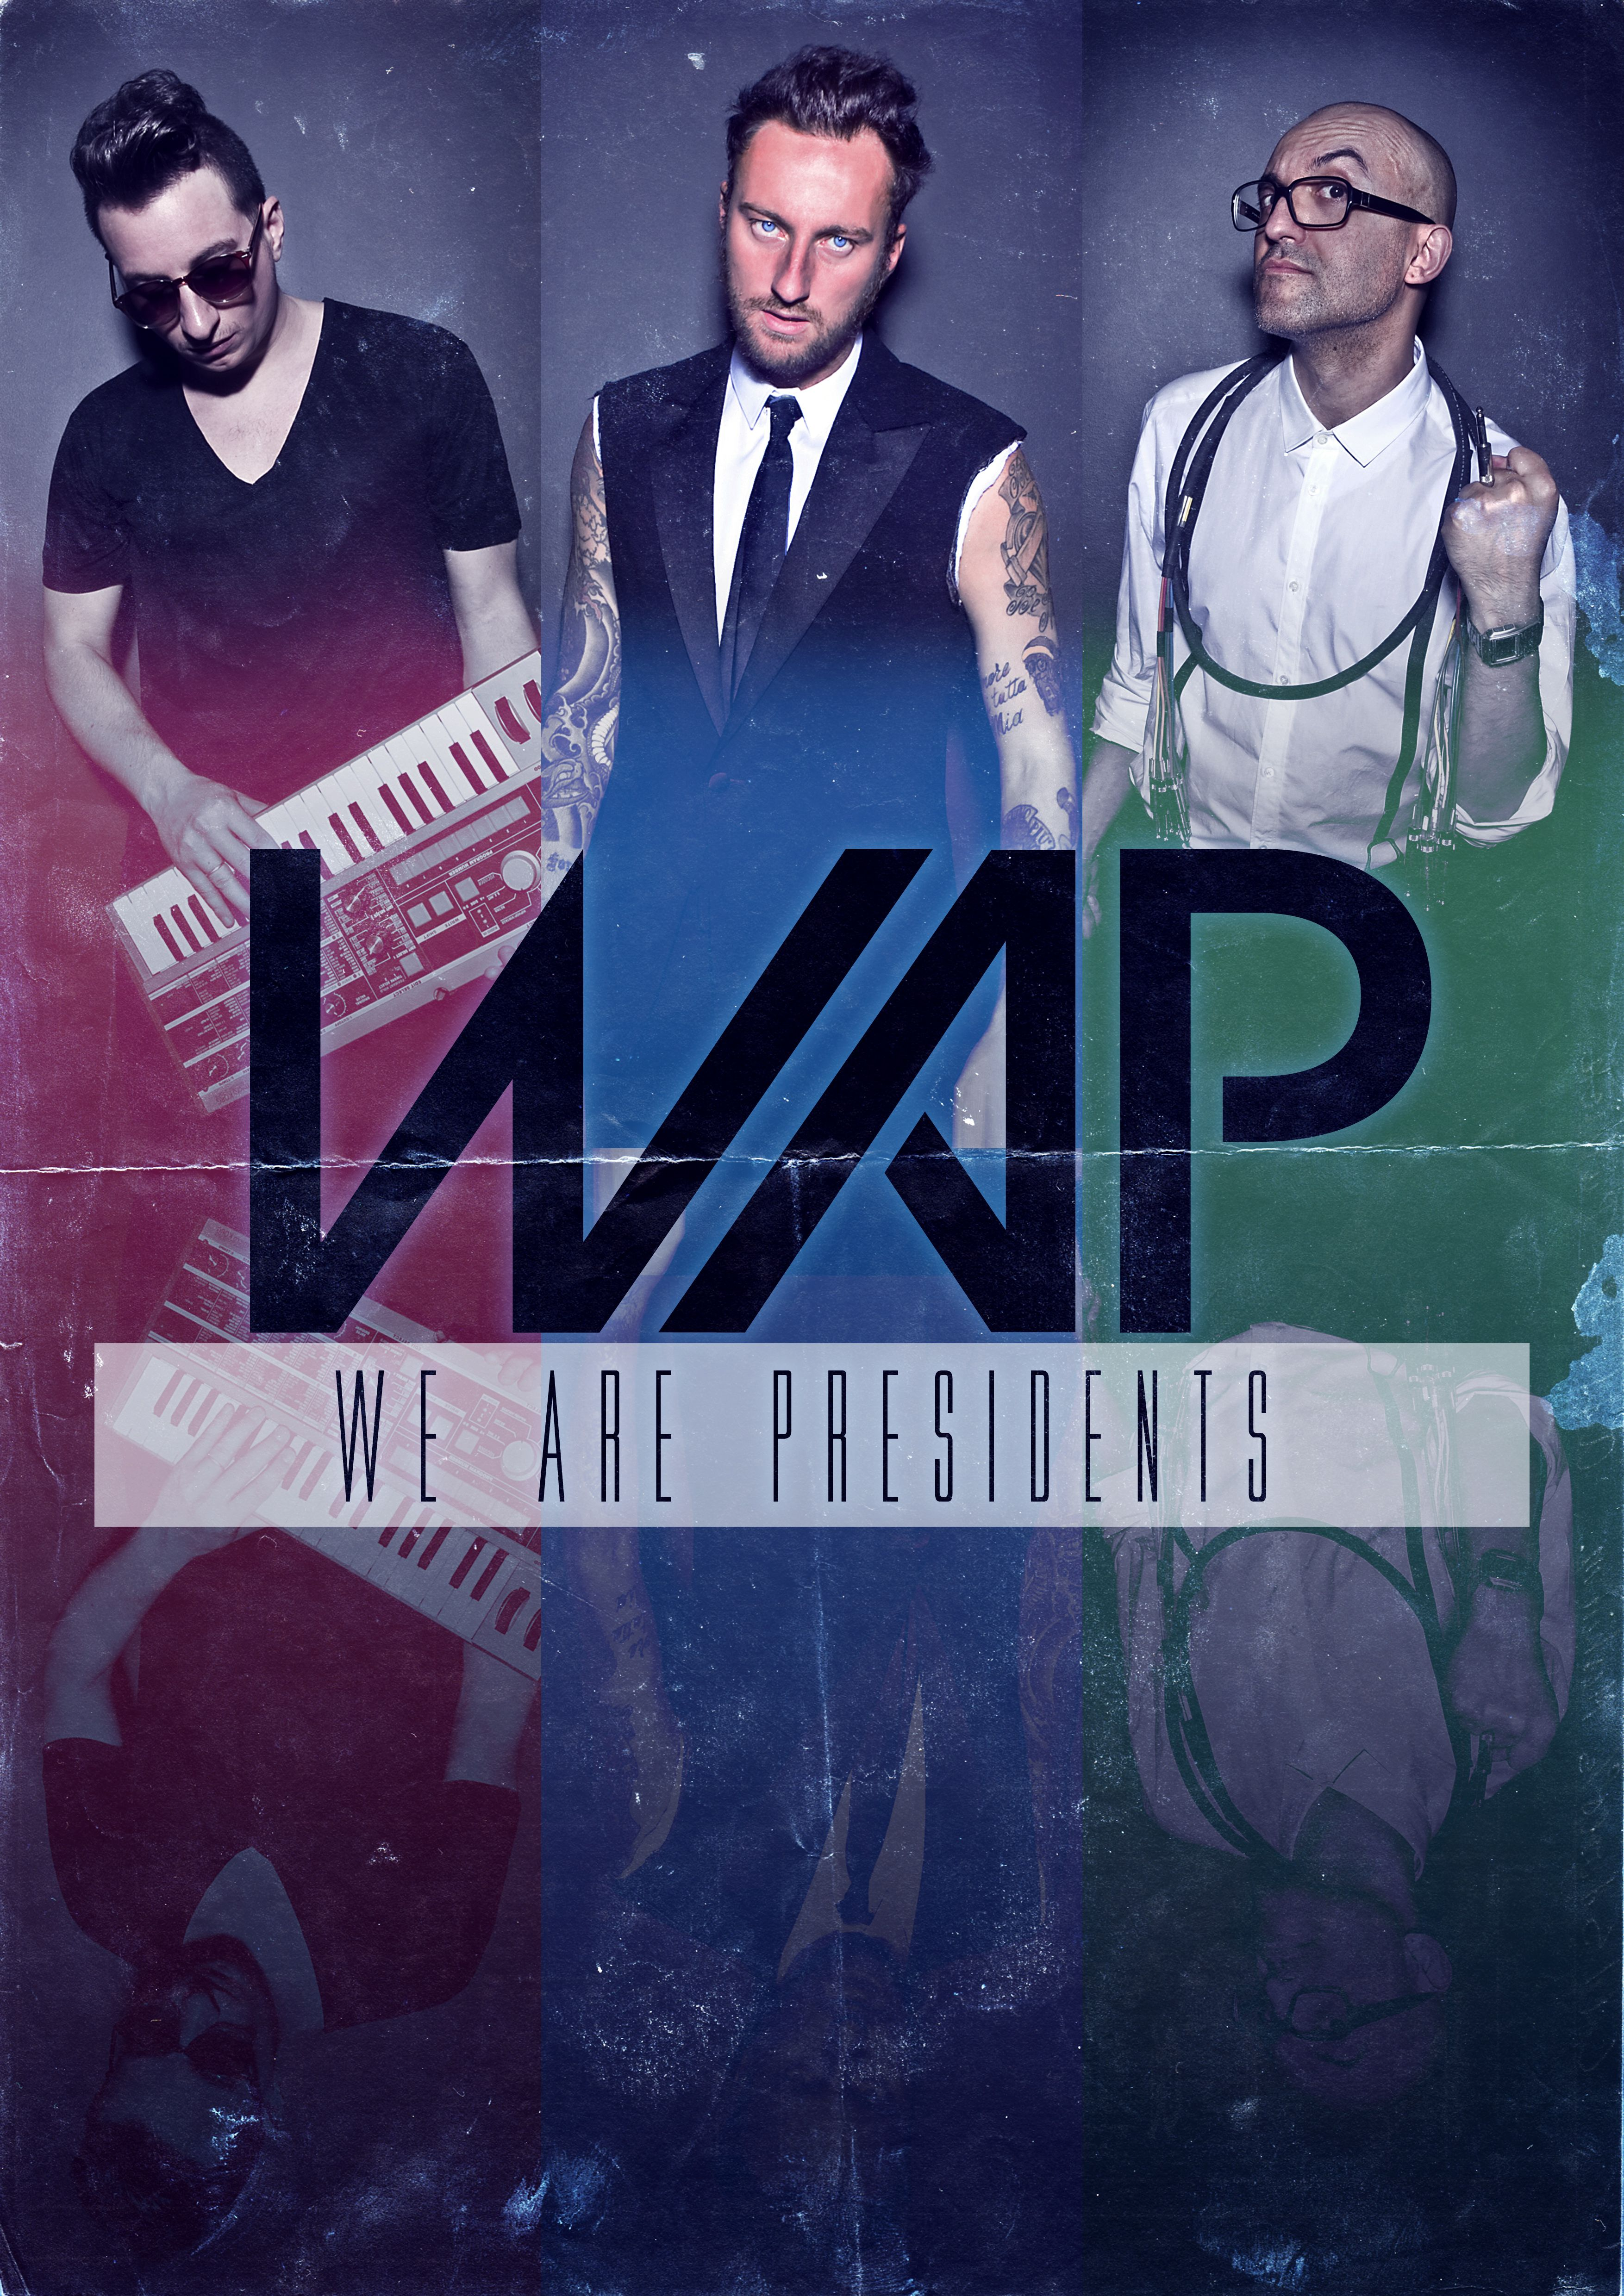 WAP - We Are Presidents